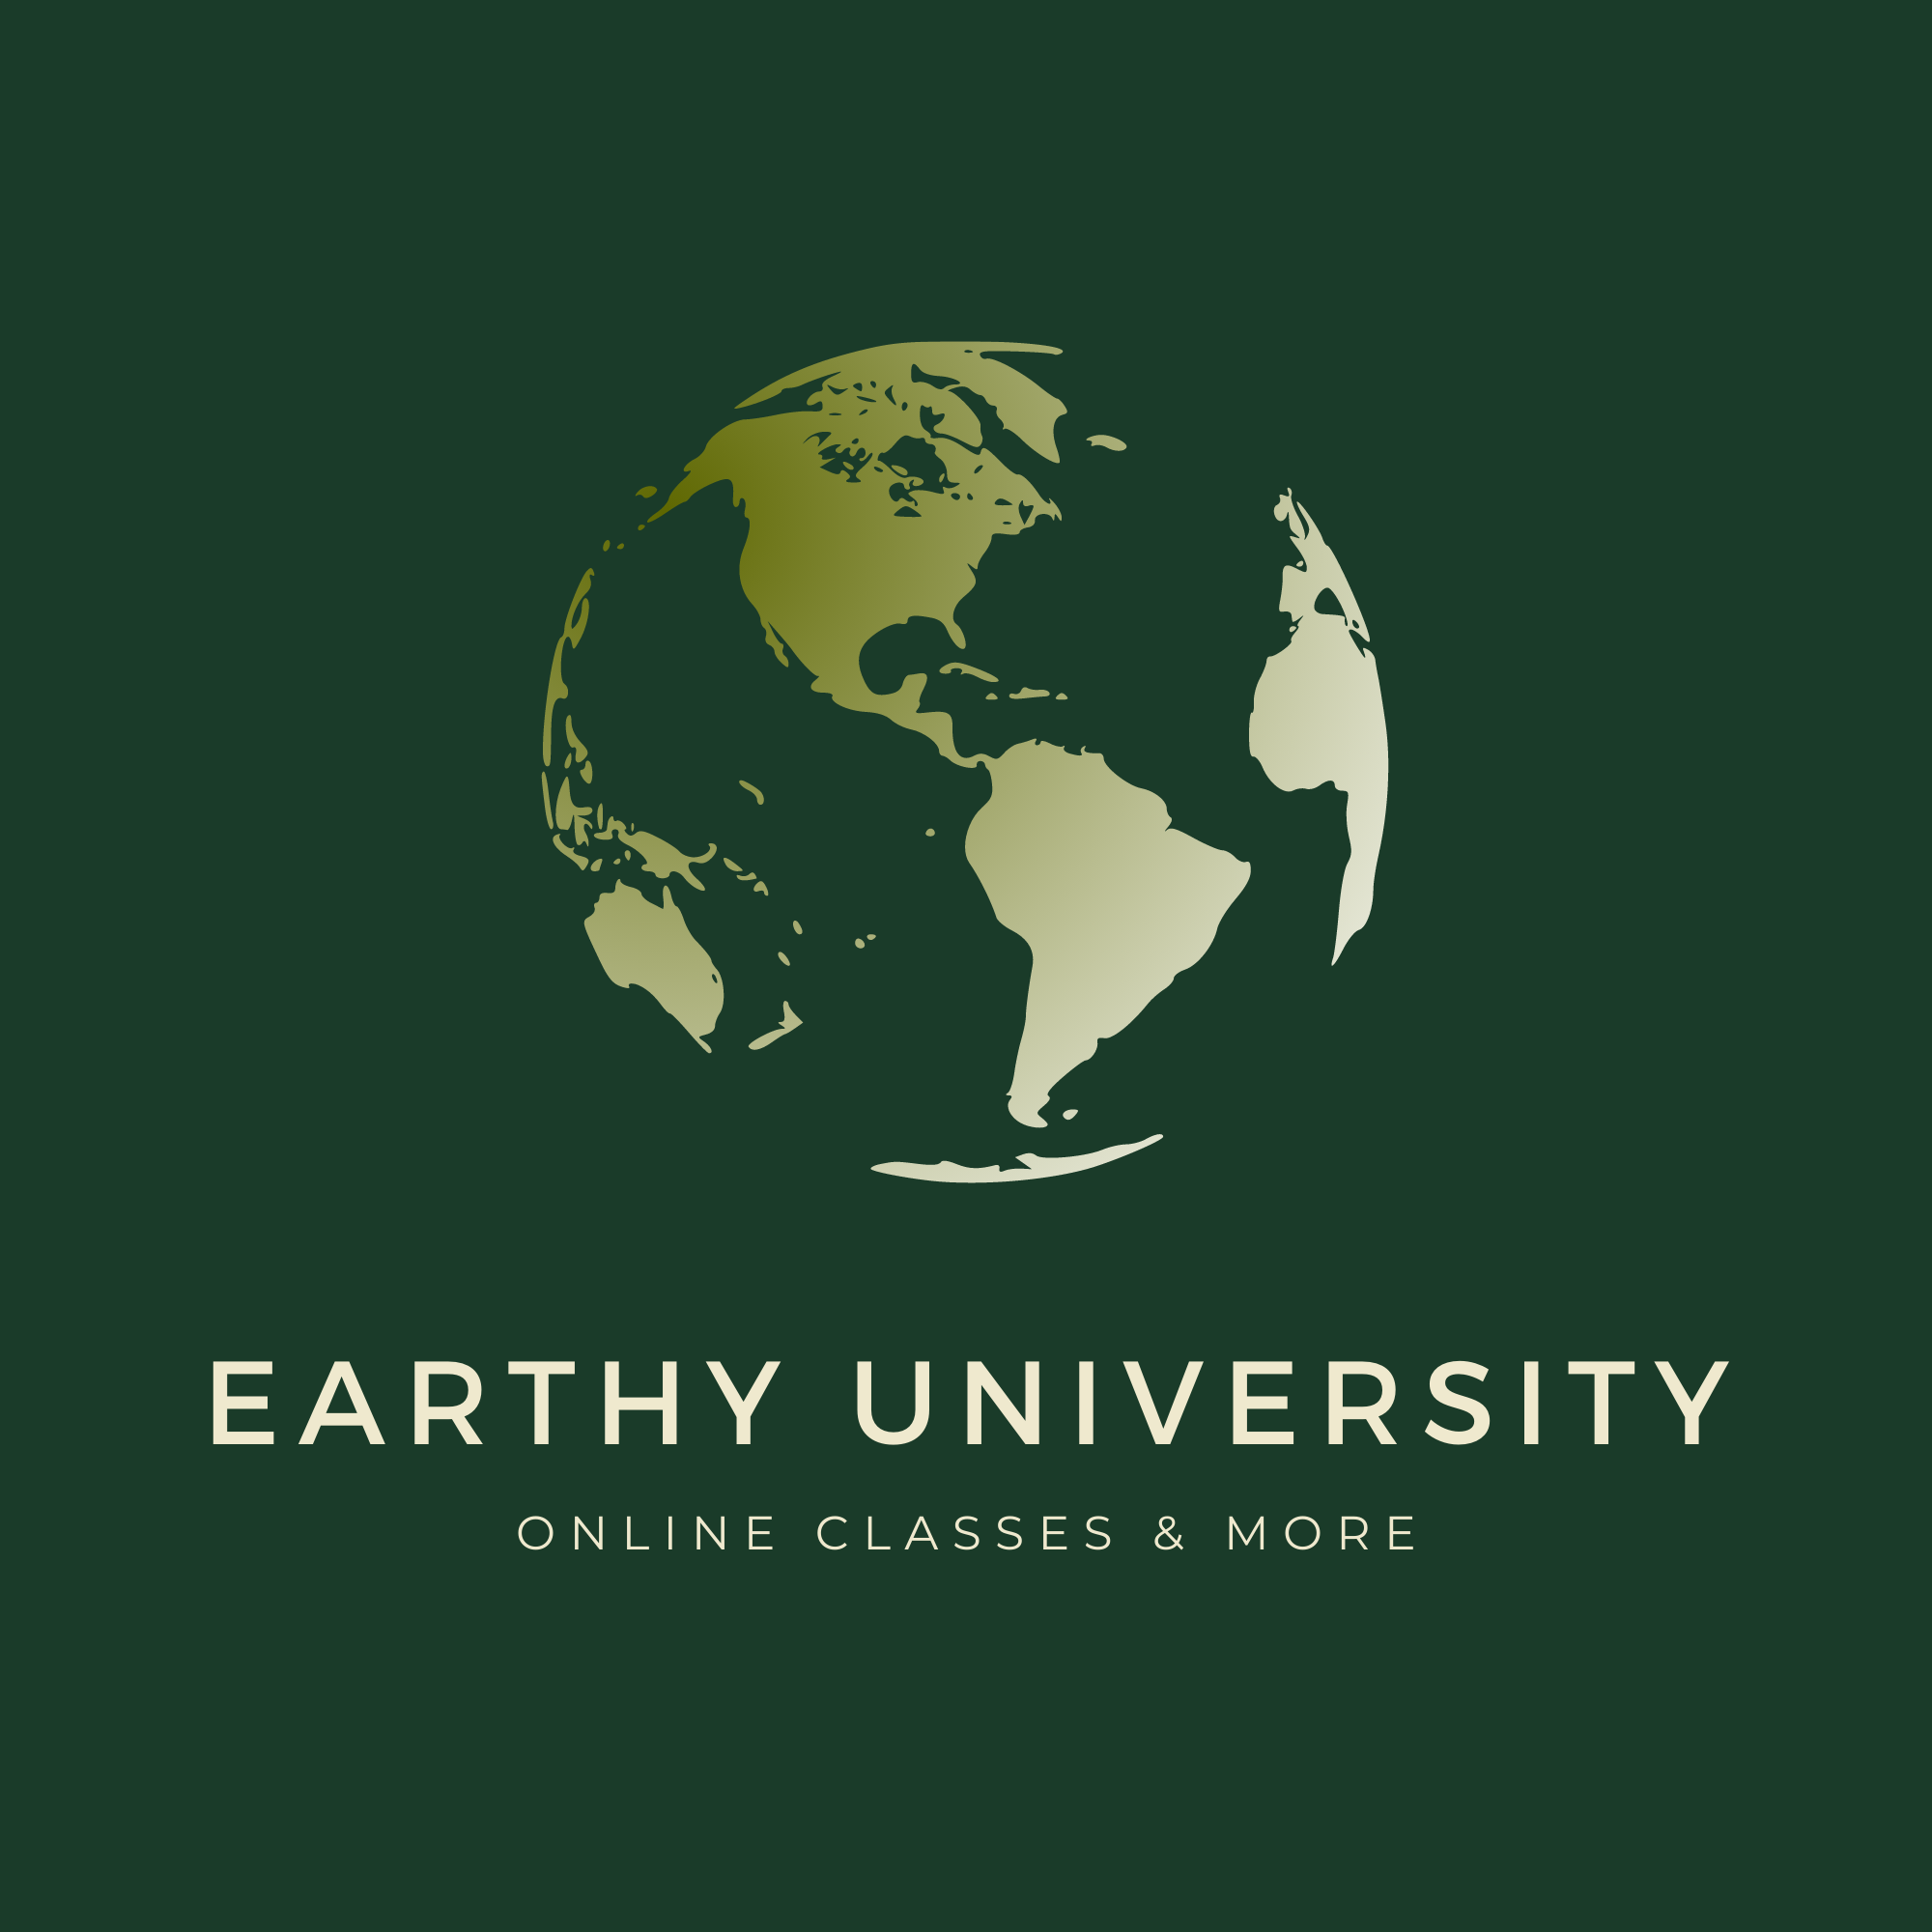 https://earthyuniversity.thinkific.com/